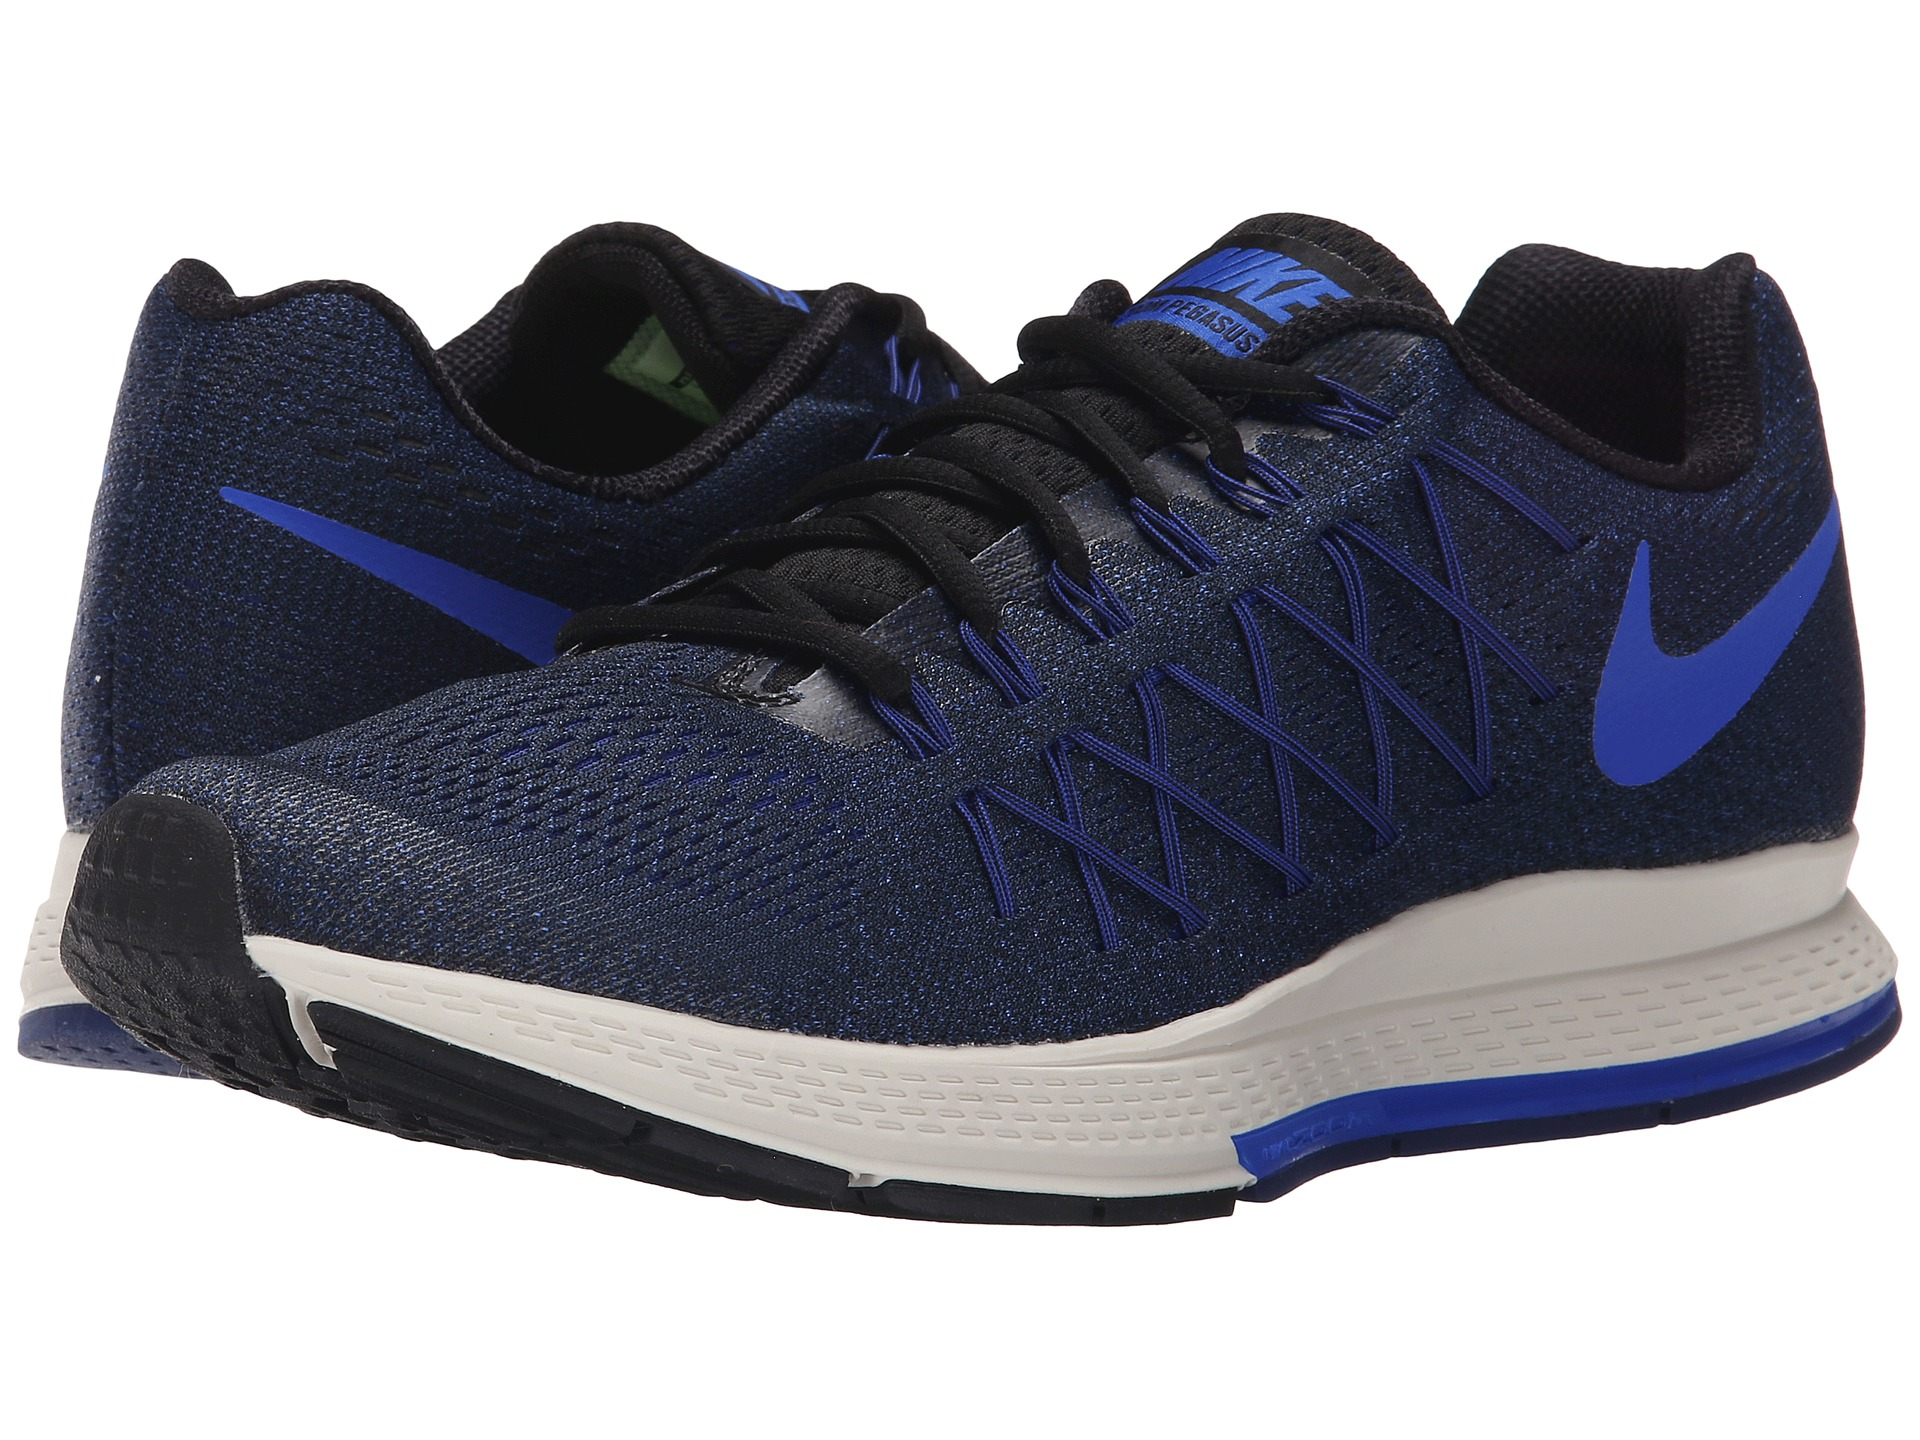 nike air zoom pegasus 32 in black lyst. Black Bedroom Furniture Sets. Home Design Ideas